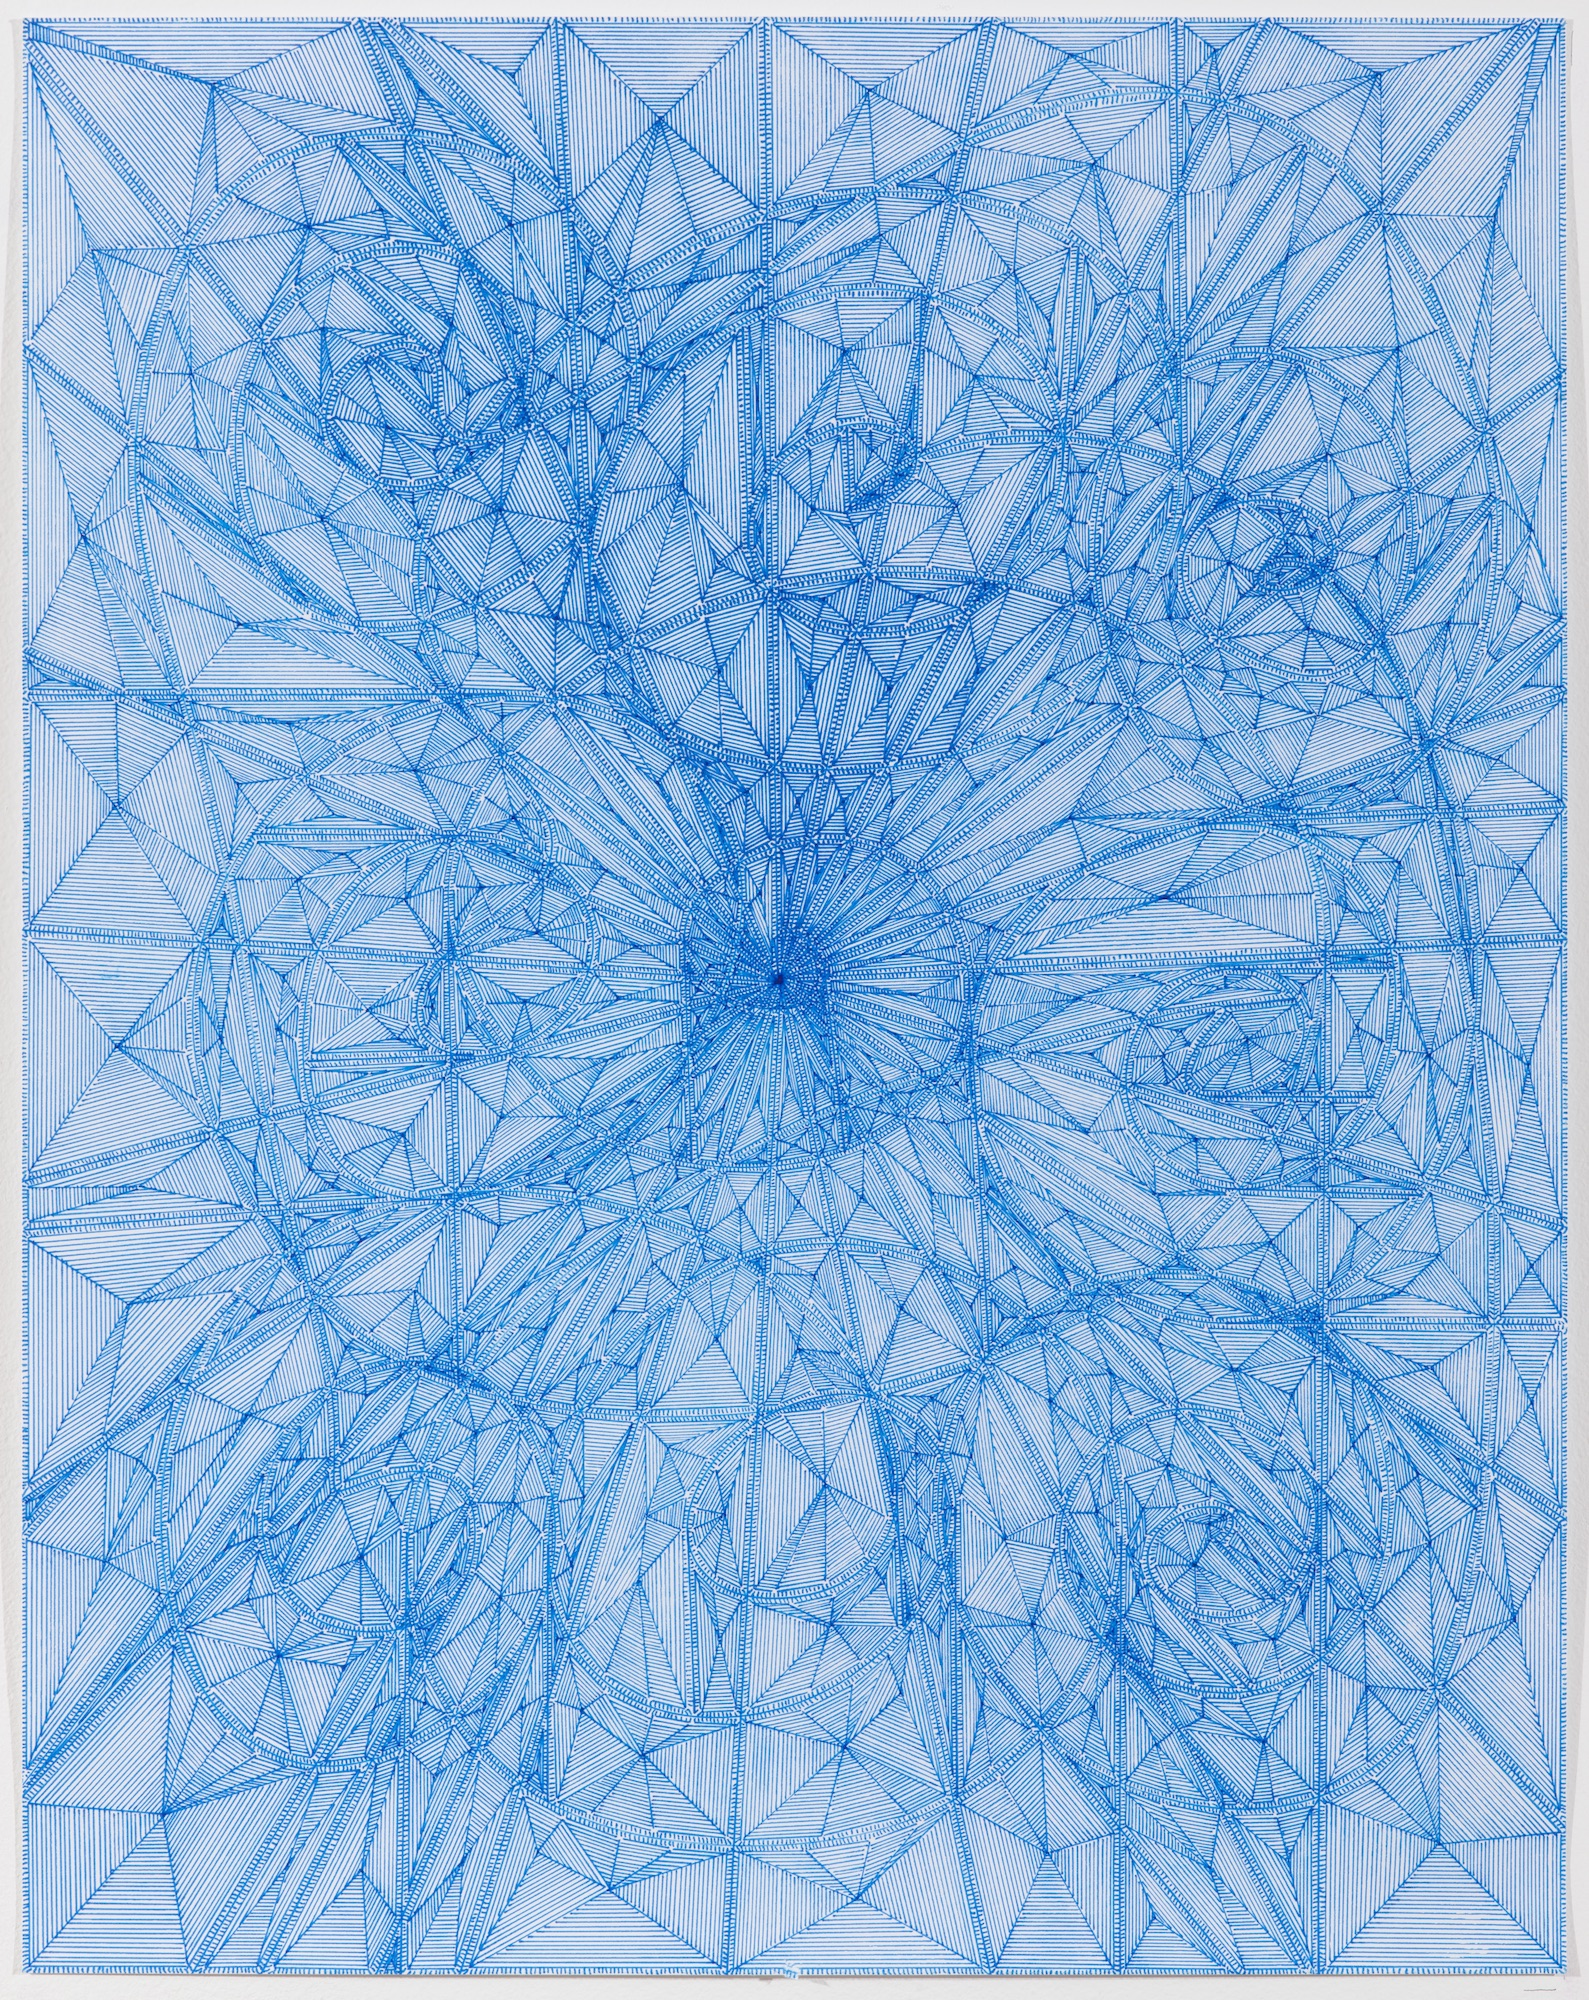 """Book 6 Volume 1 Page 2, 2018  in """"Richard Tinkler: Drawings"""" at 56 Henry."""